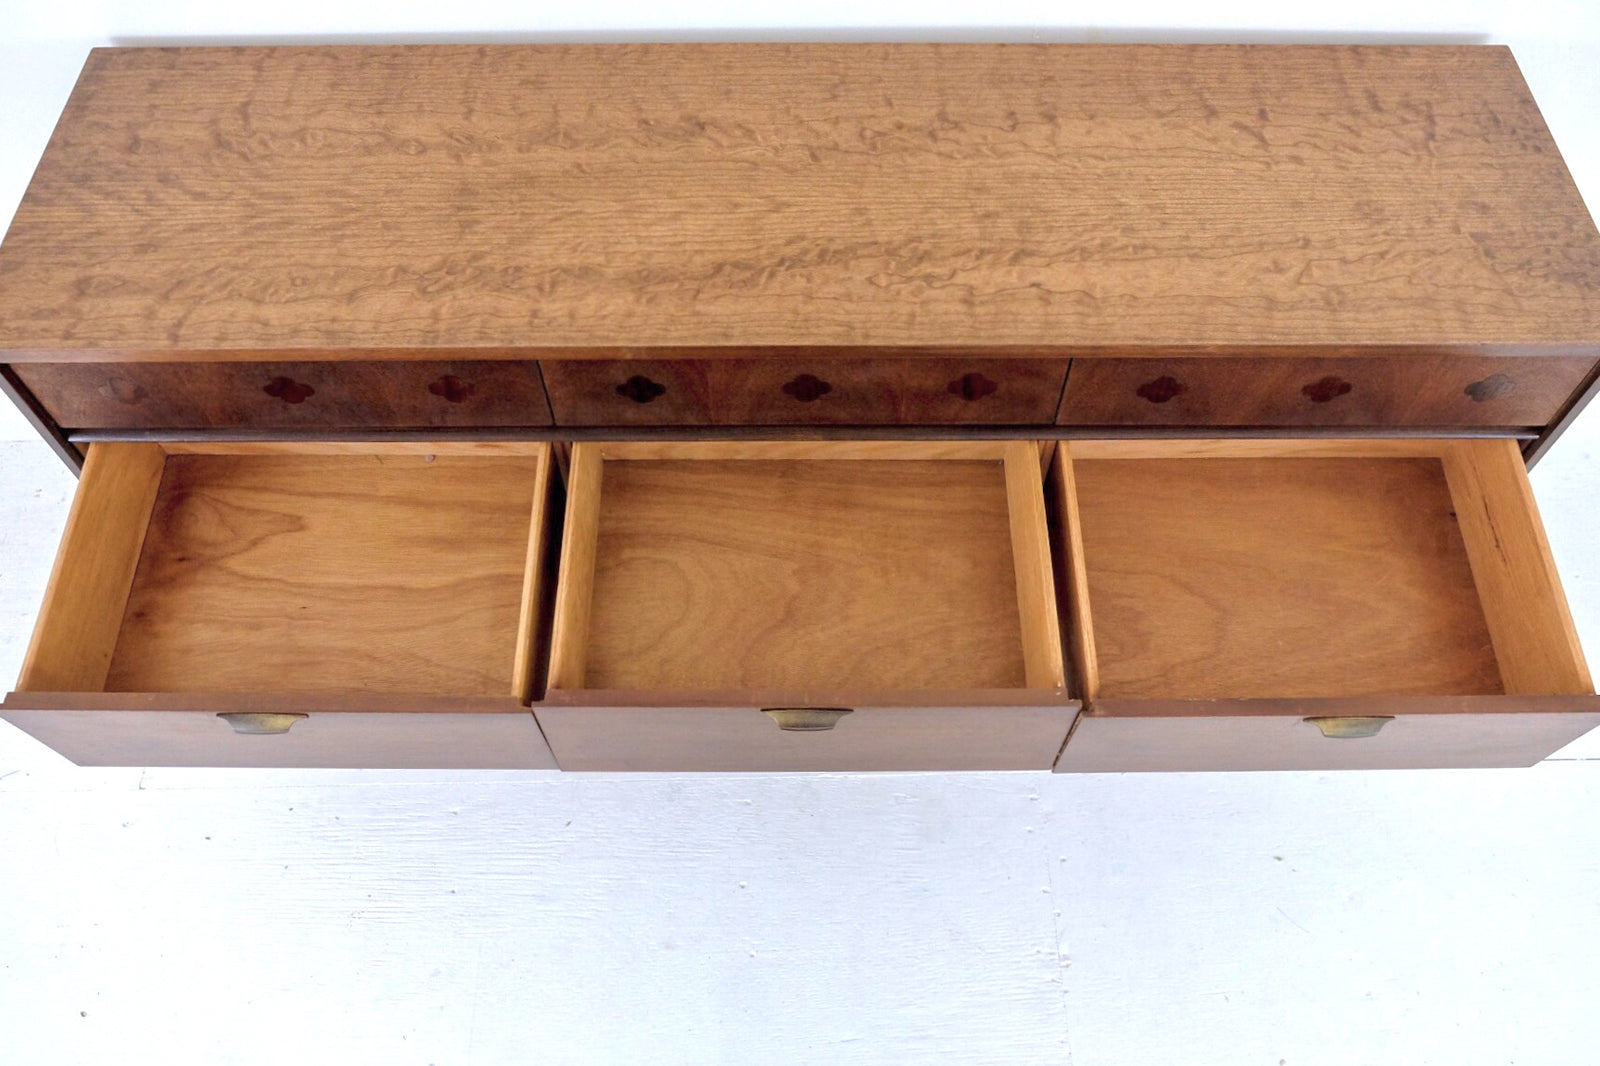 Four Leaf Clover Inlay Two Tone Mid Century Low Dresser Nine Drawers